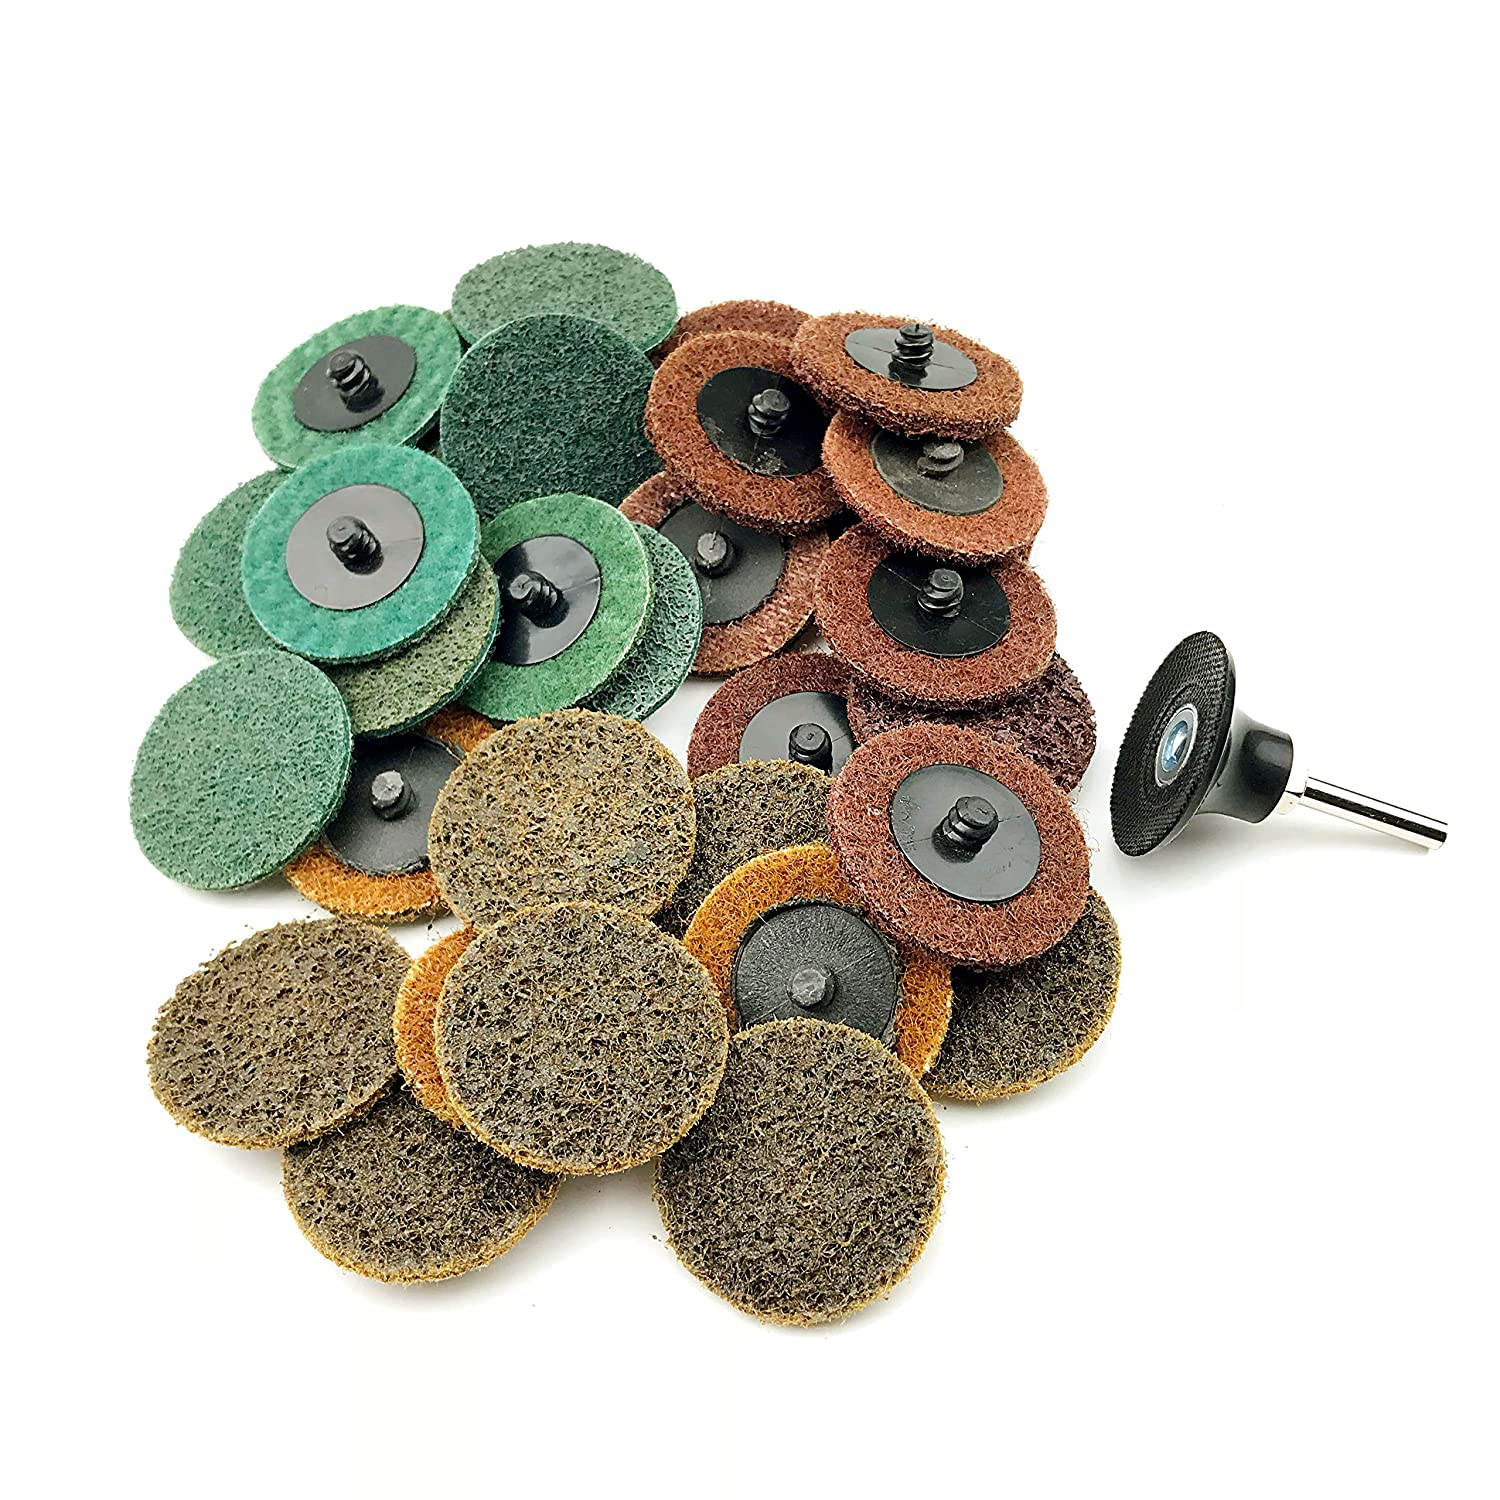 10pcs each of Coarse//Medium//Fine Grit total 30pcs + 1//4 Shank Disc Pad Holder 2 Inch Assorted Grit Roloc R-Type Sanding Discs Nylon Non Woven Fabric Quick-Change Surface Conditioning Disc